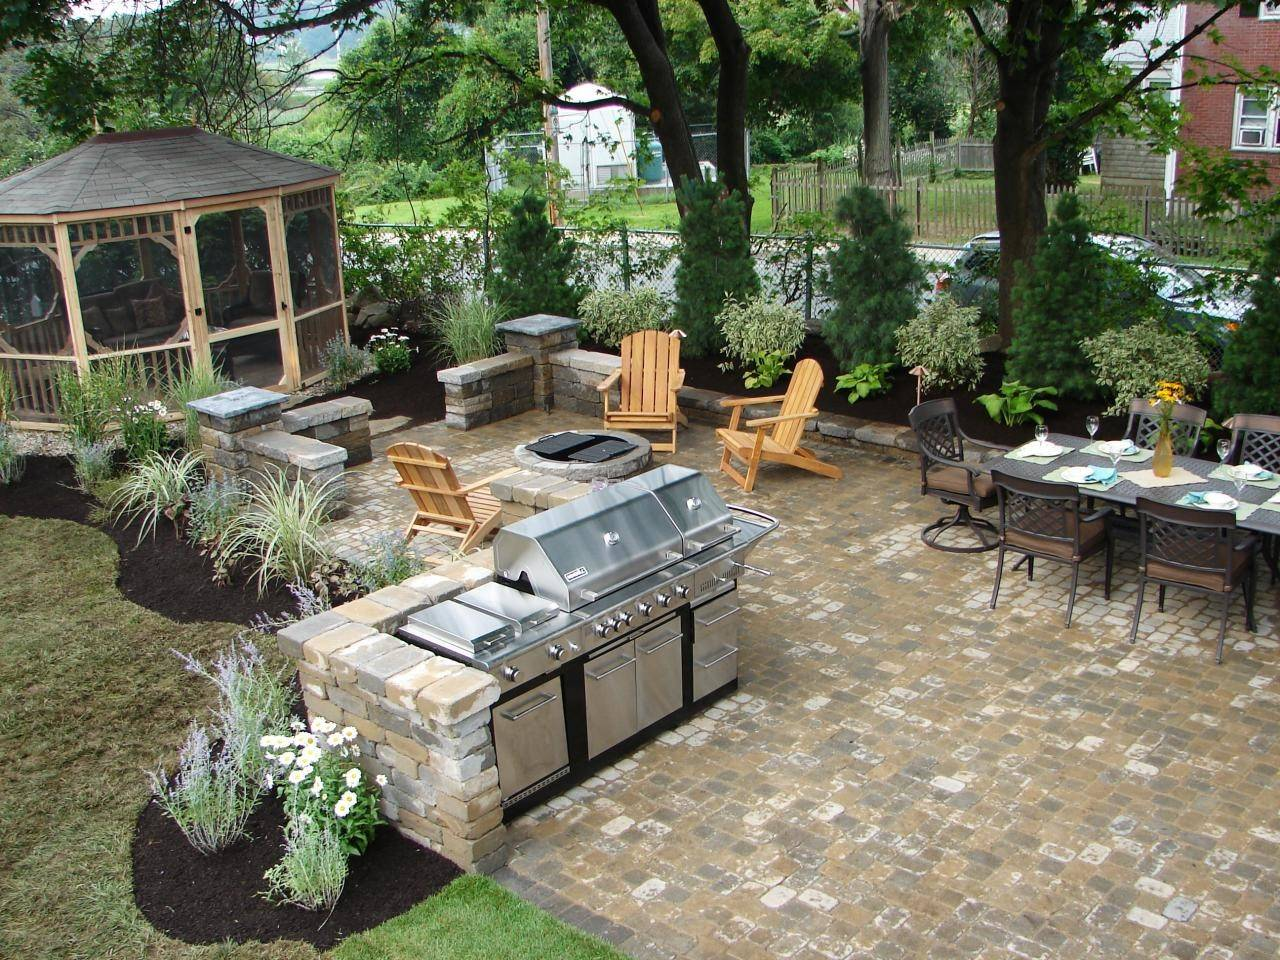 Dream Outdoor Grill Area Ideas 16 Photo - Barb Homes